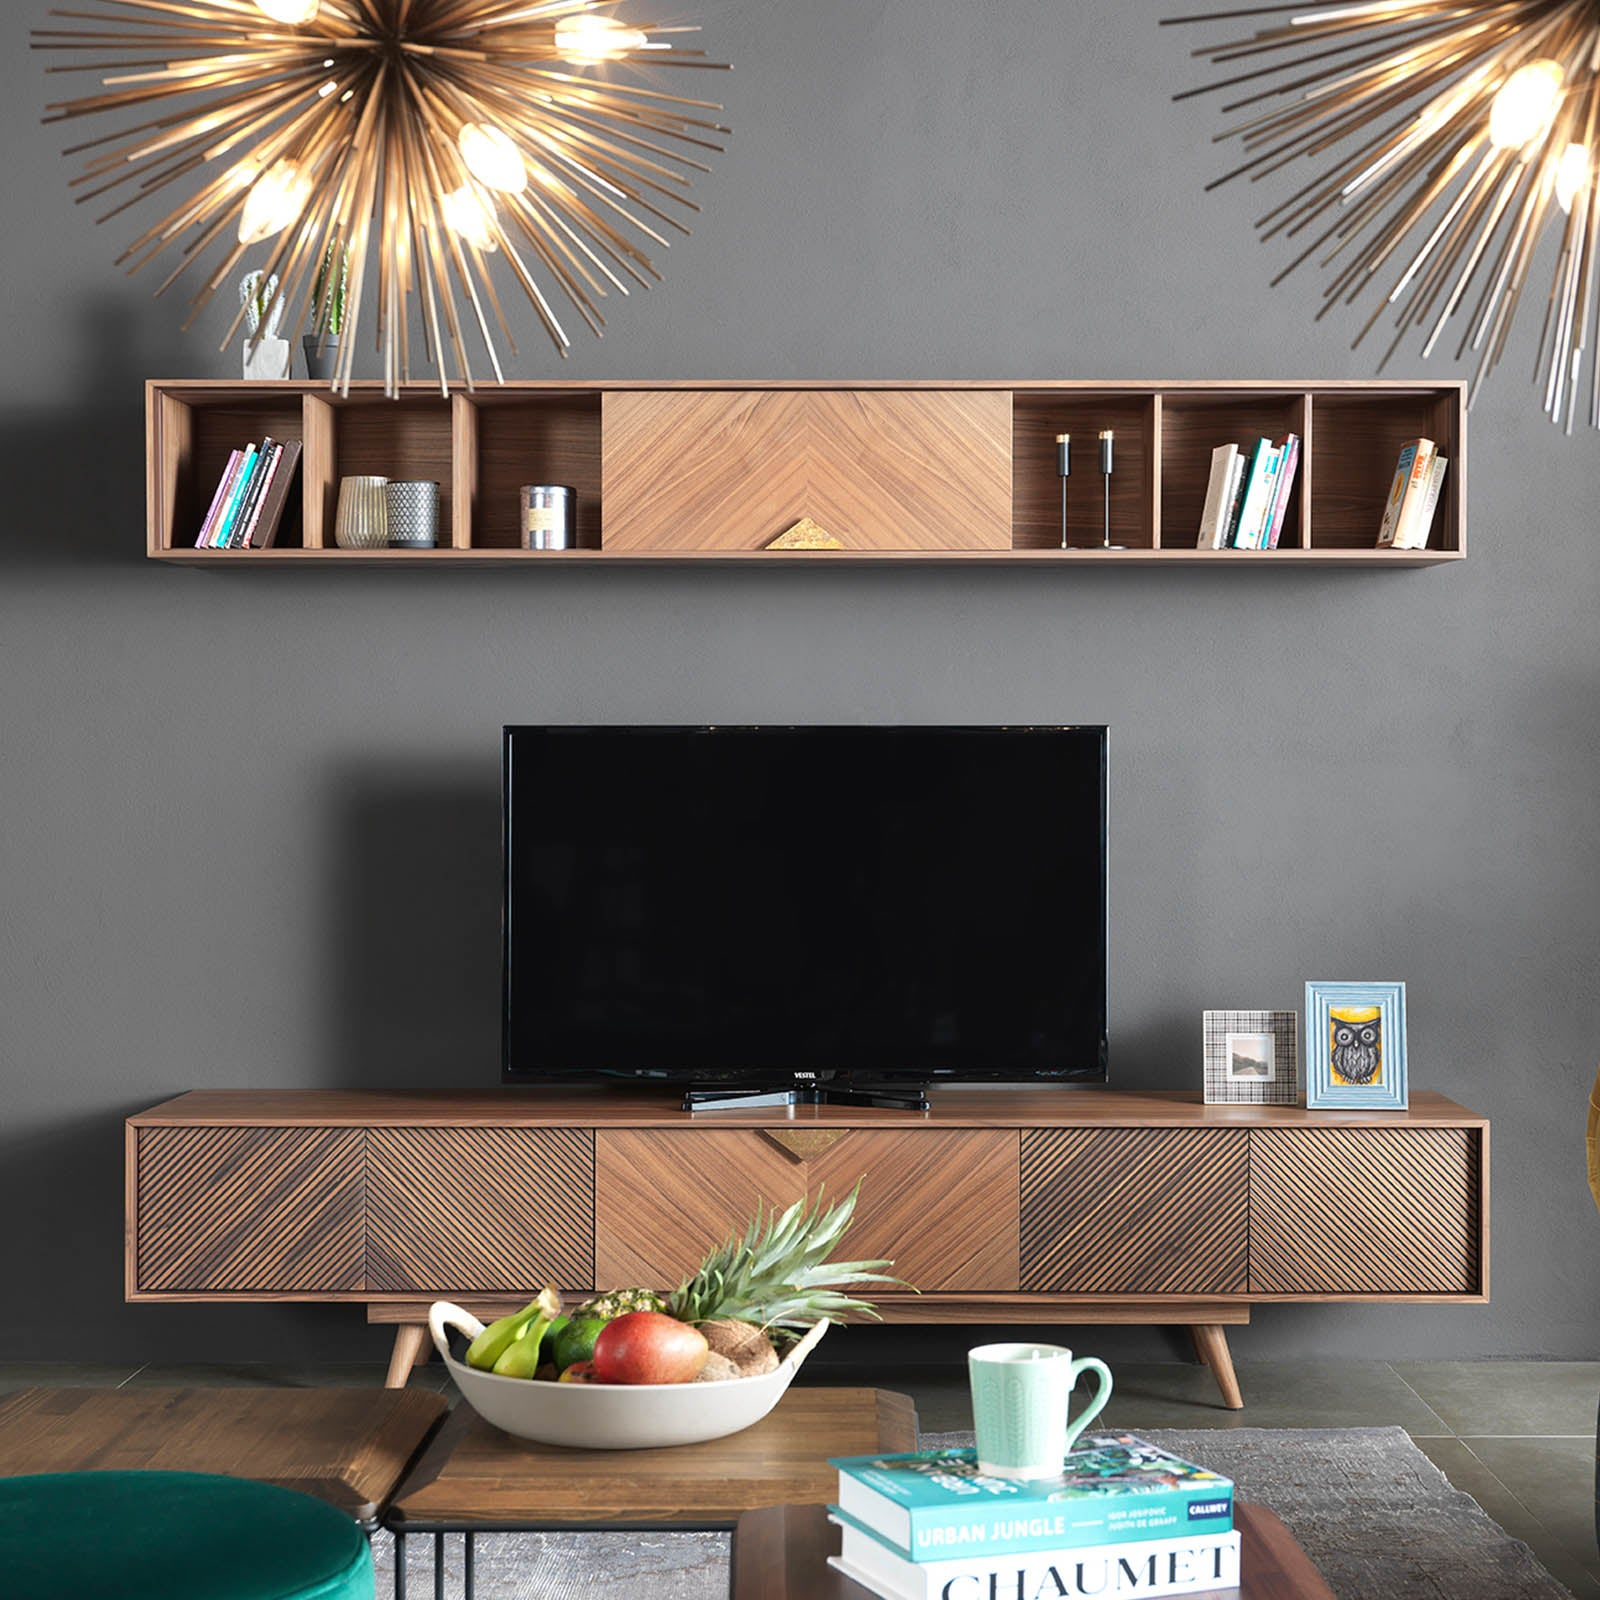 Florya TV Unit FLOR0099 -  طاولة تلفزيون فلوريا - Shop Online Furniture and Home Decor Store in Dubai, UAE at ebarza